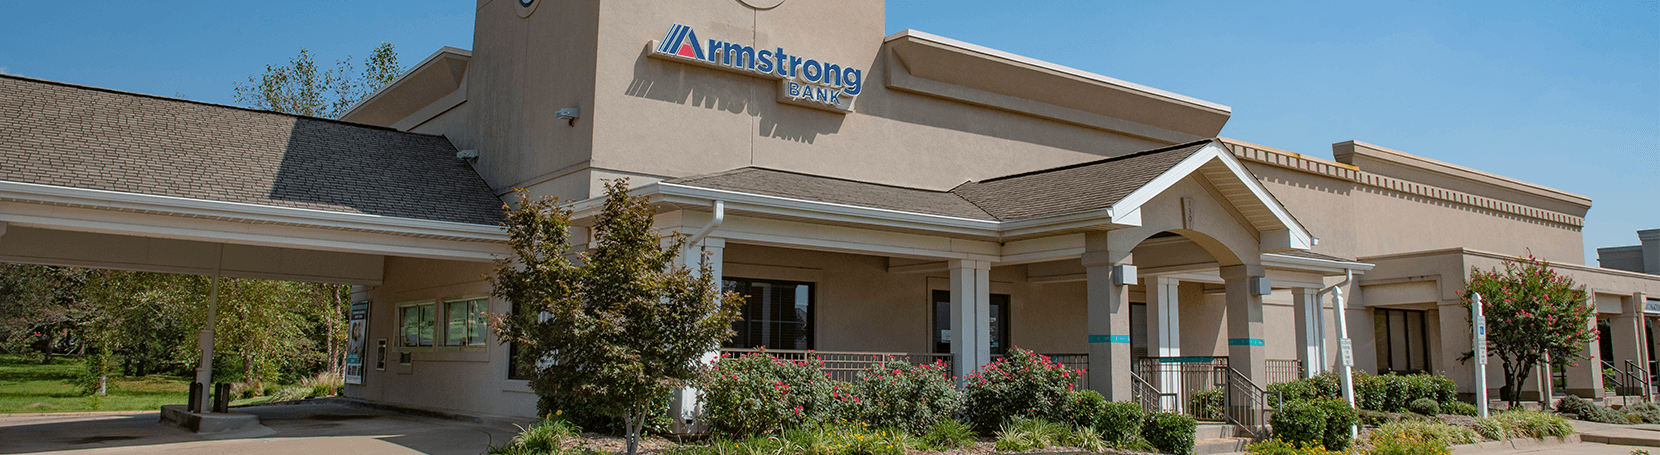 Armstrong Bank building in Fort Smith, Arkansas